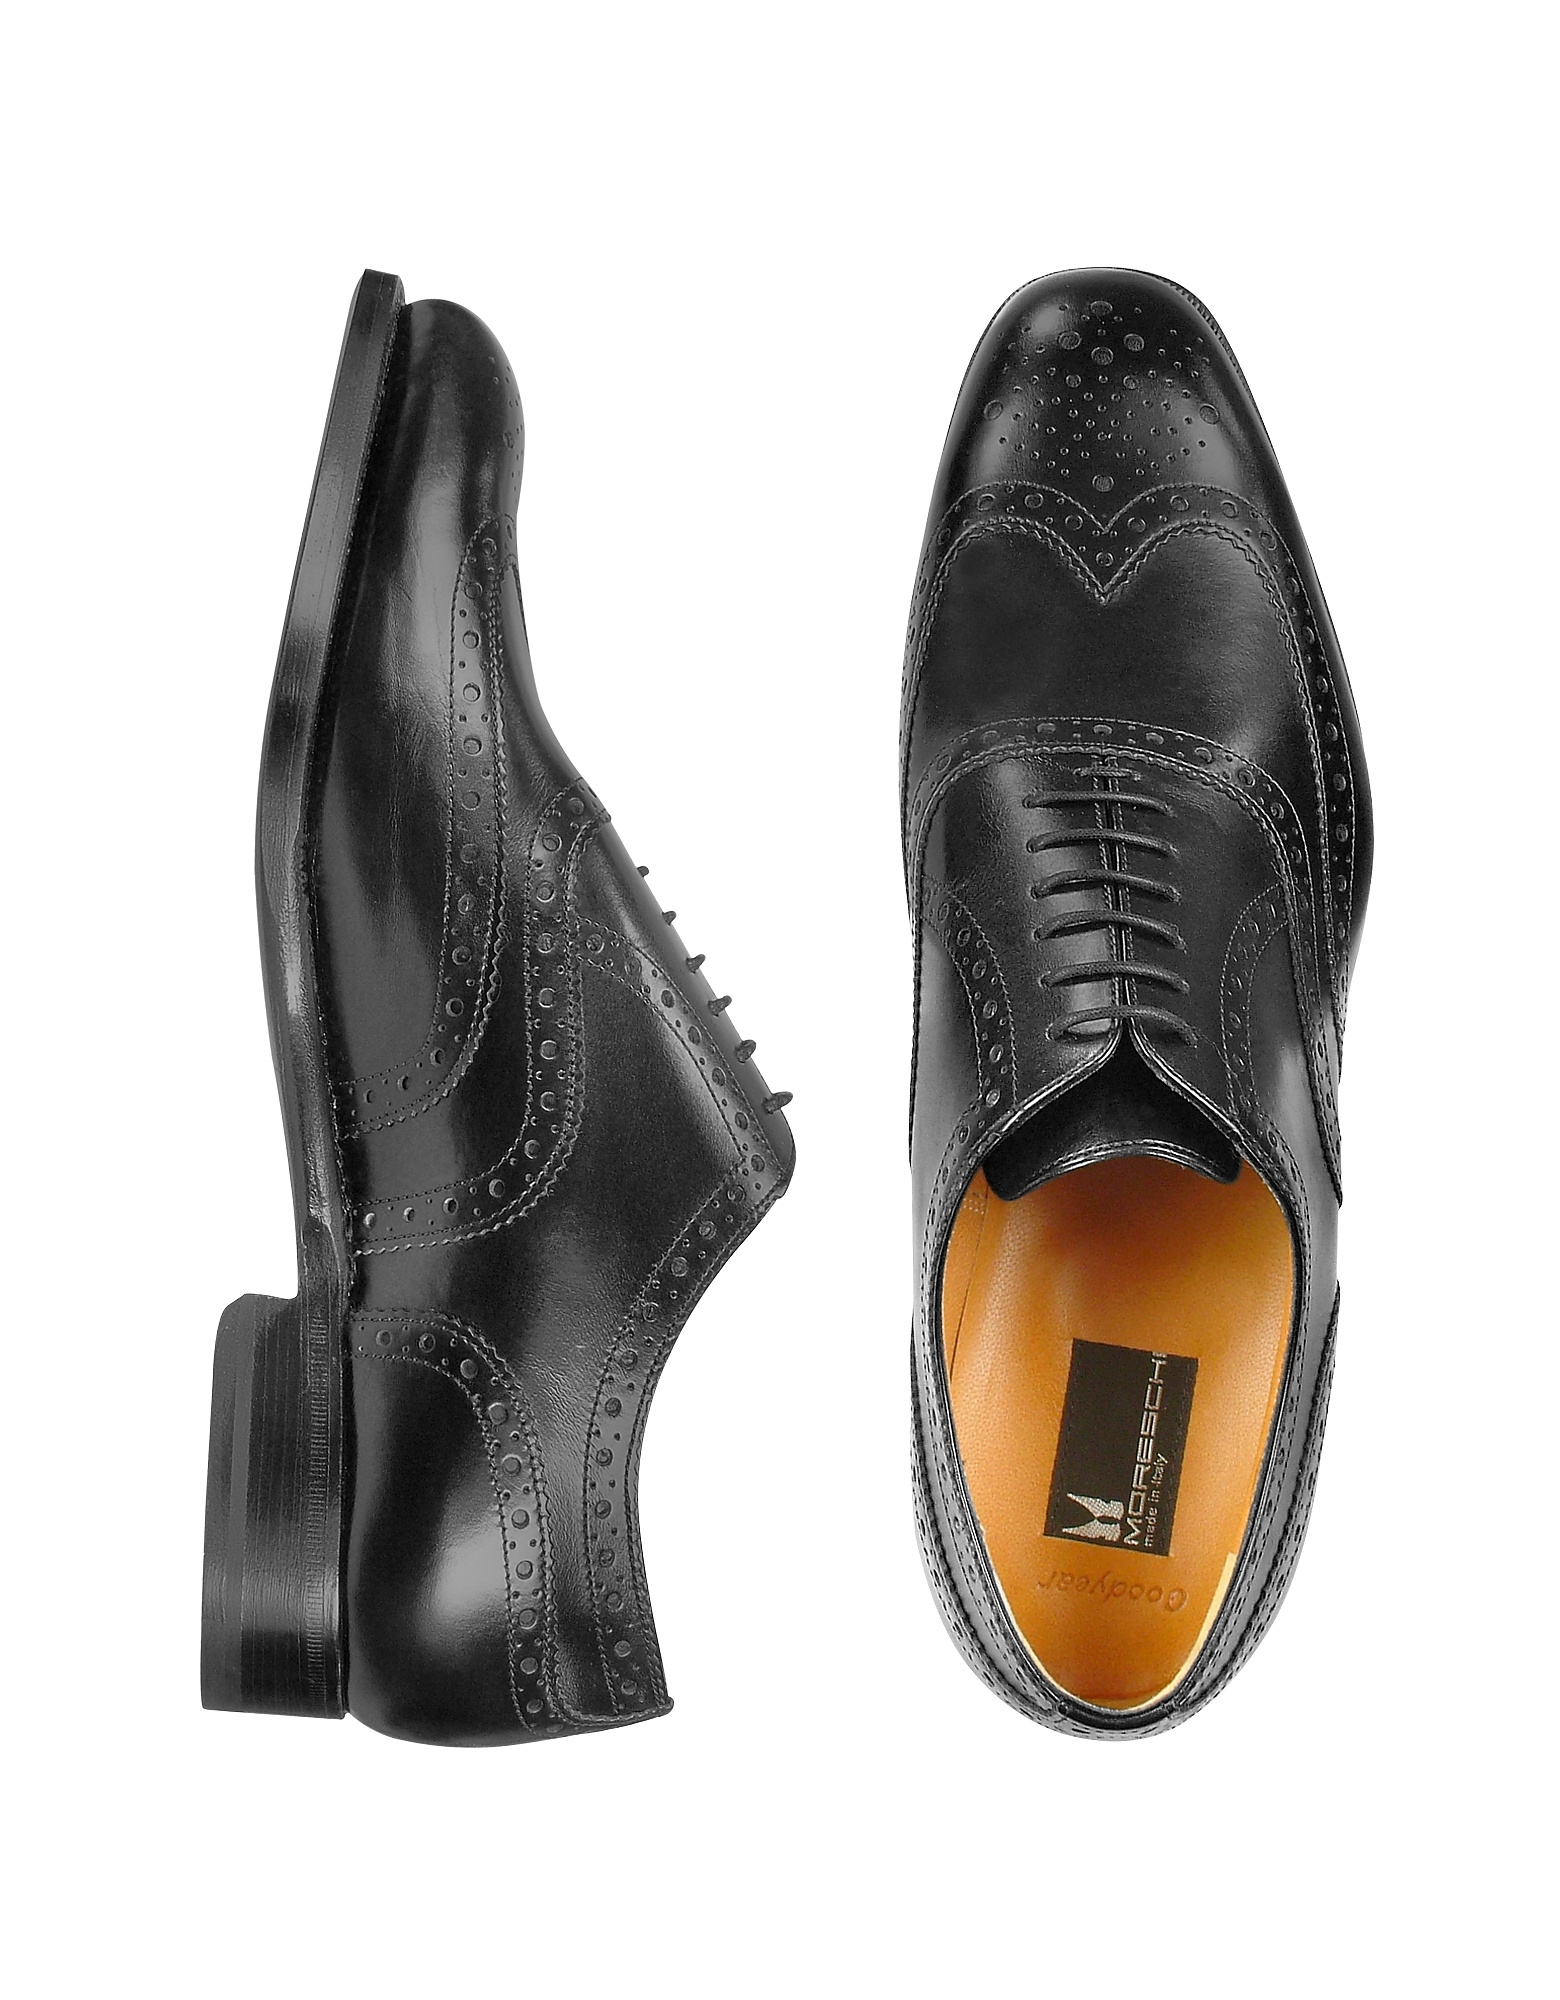 Moreschi Shoes, Oxford - Black Calfskin Wingtip Shoes